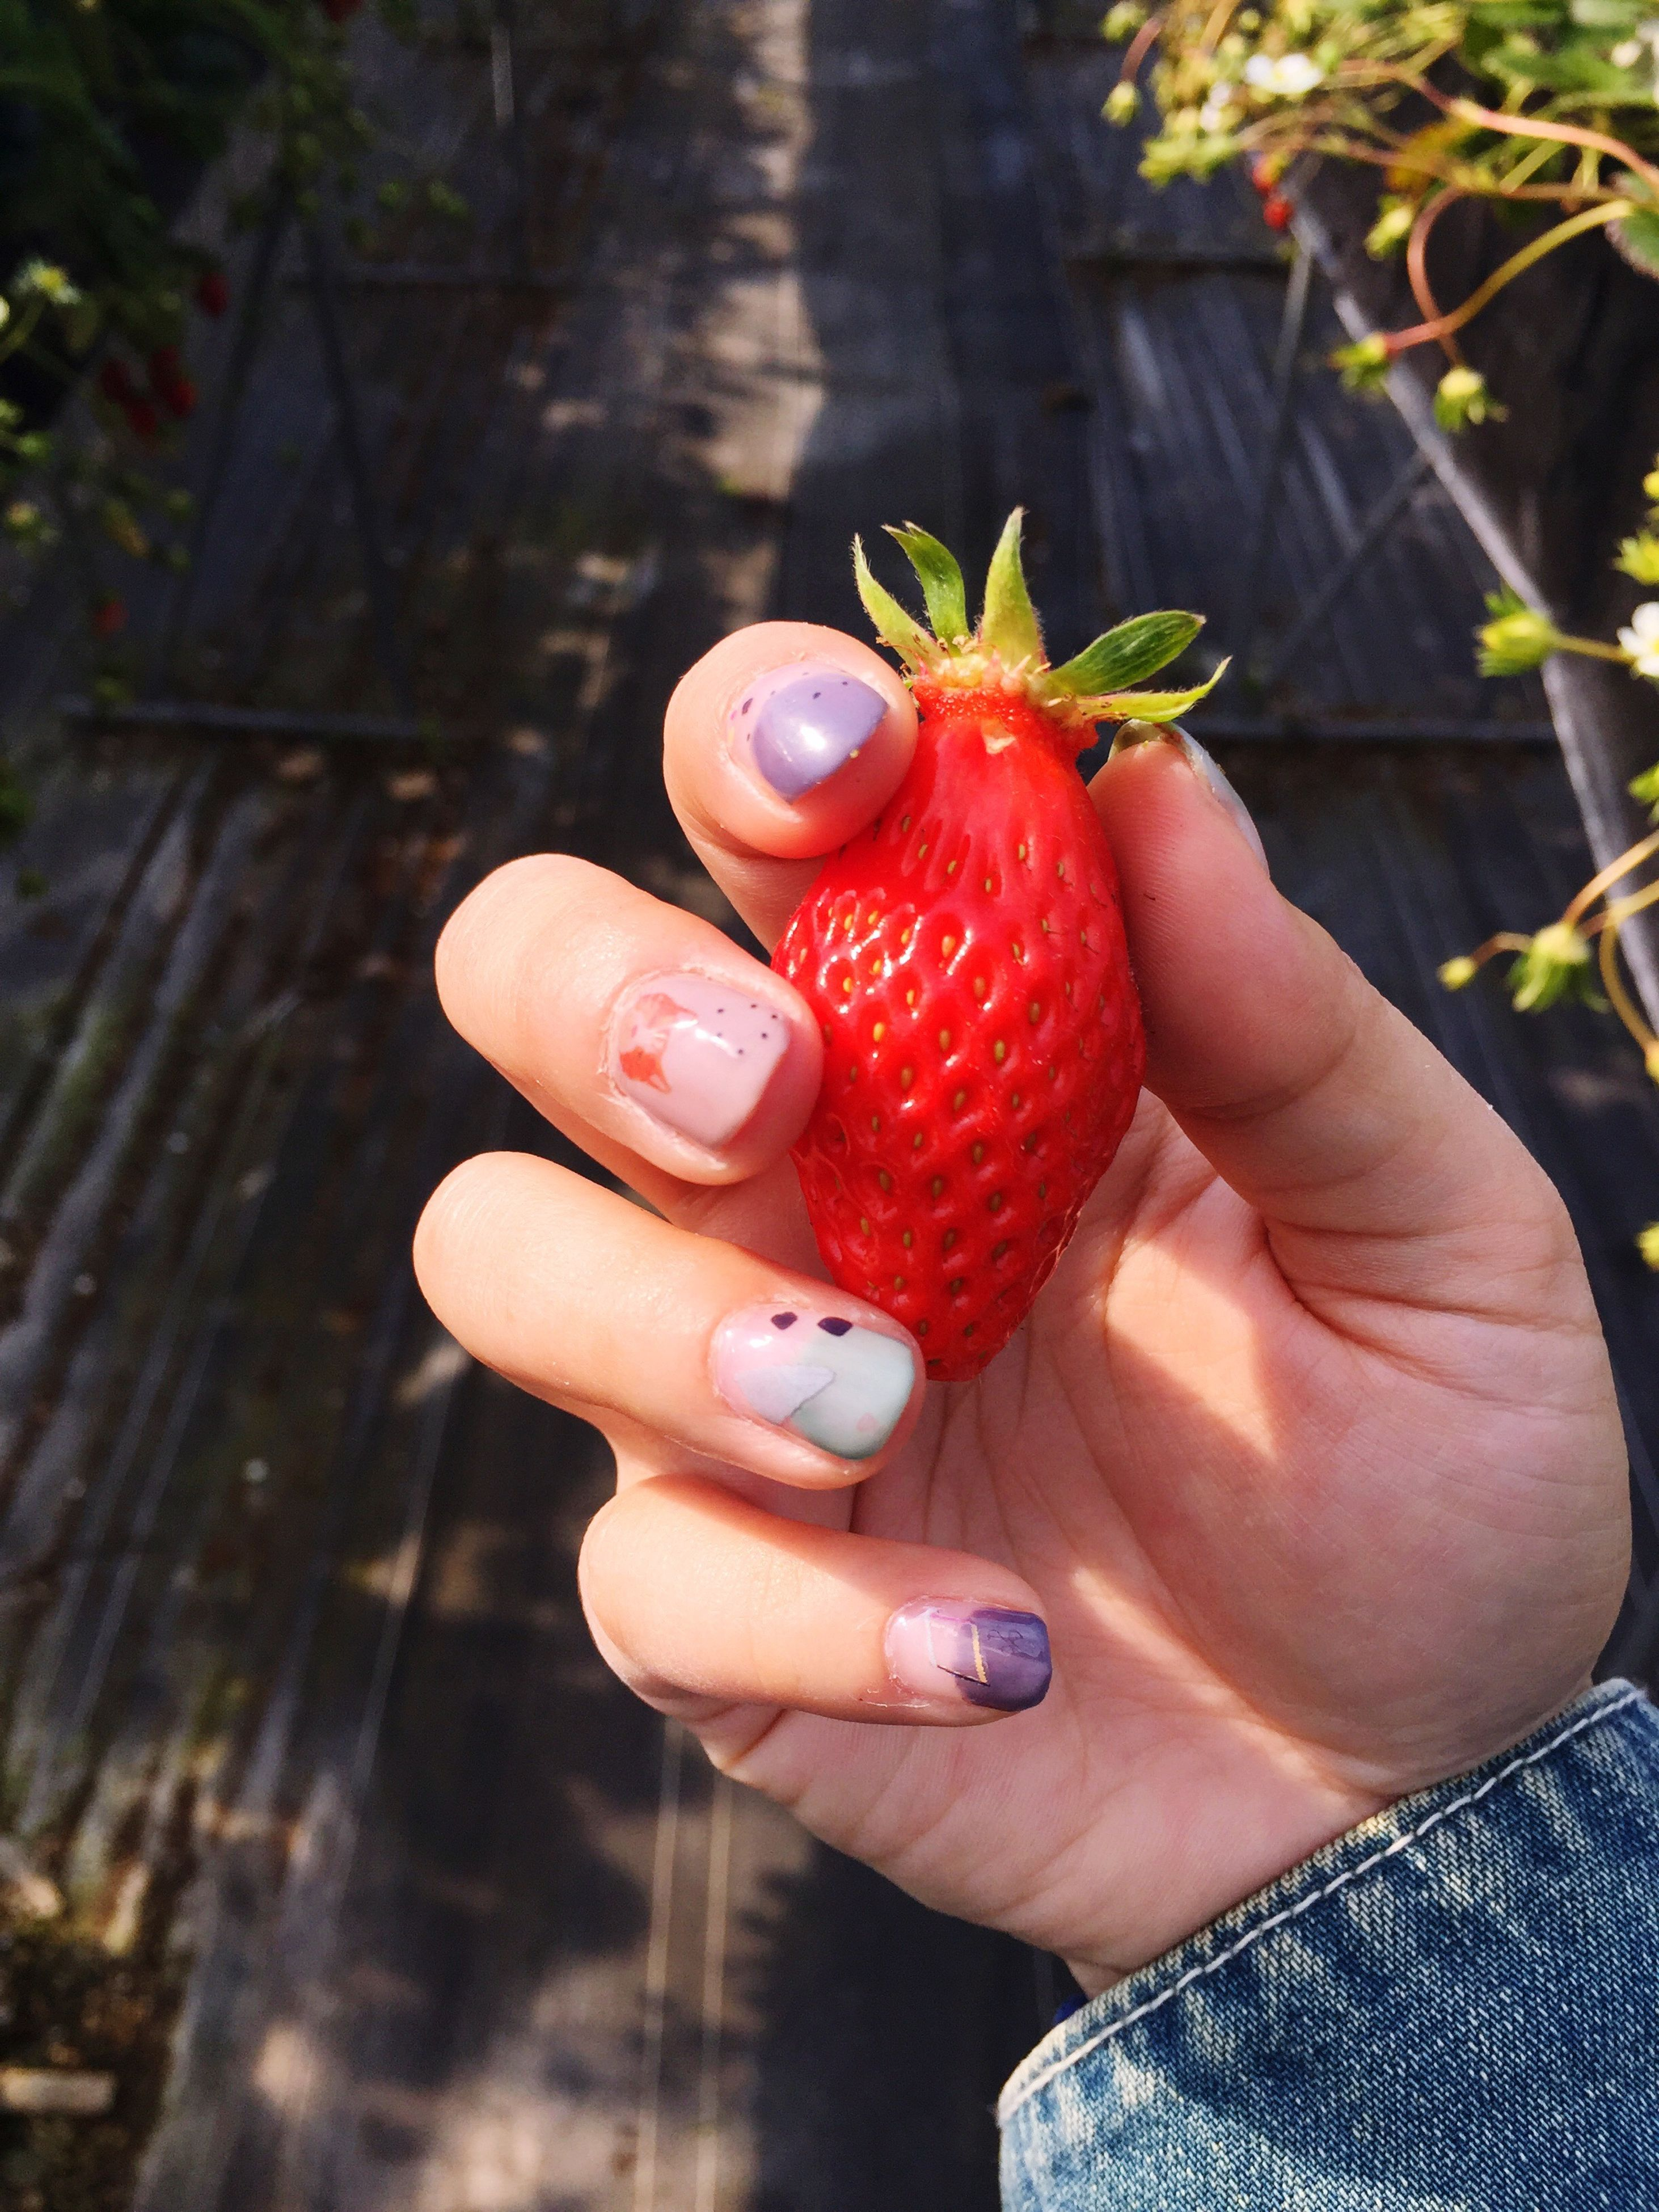 person, holding, food and drink, fruit, food, human finger, healthy eating, part of, red, freshness, cropped, strawberry, close-up, unrecognizable person, focus on foreground, personal perspective, lifestyles